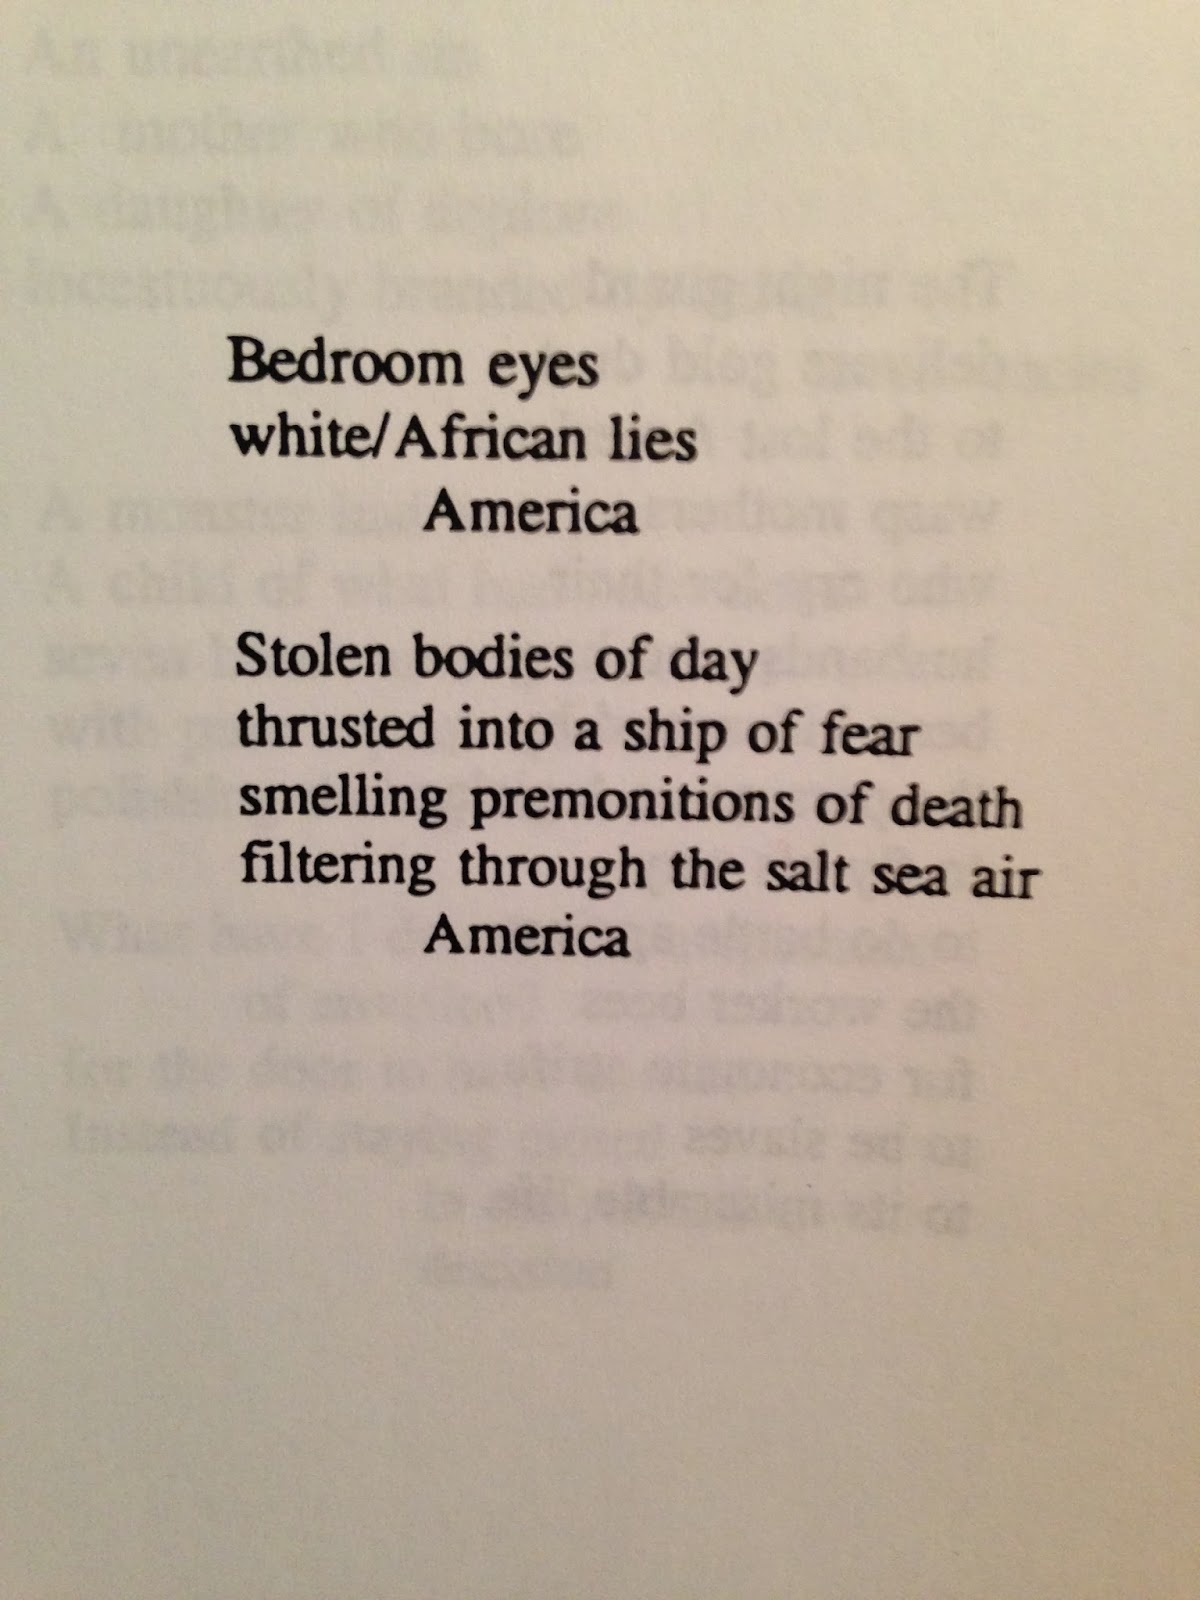 american historical past poems